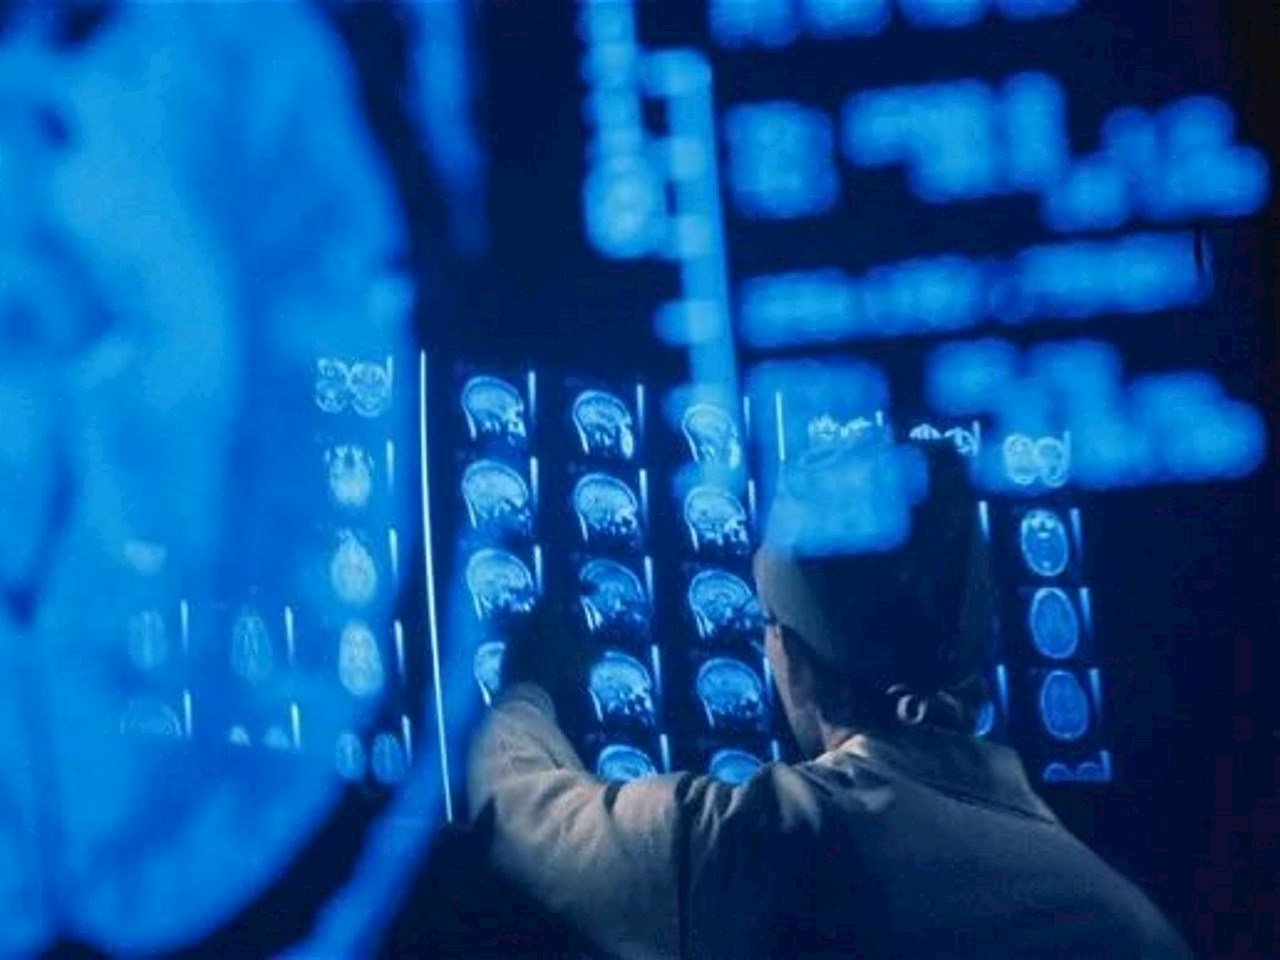 Patients will be monitored using MRI scans